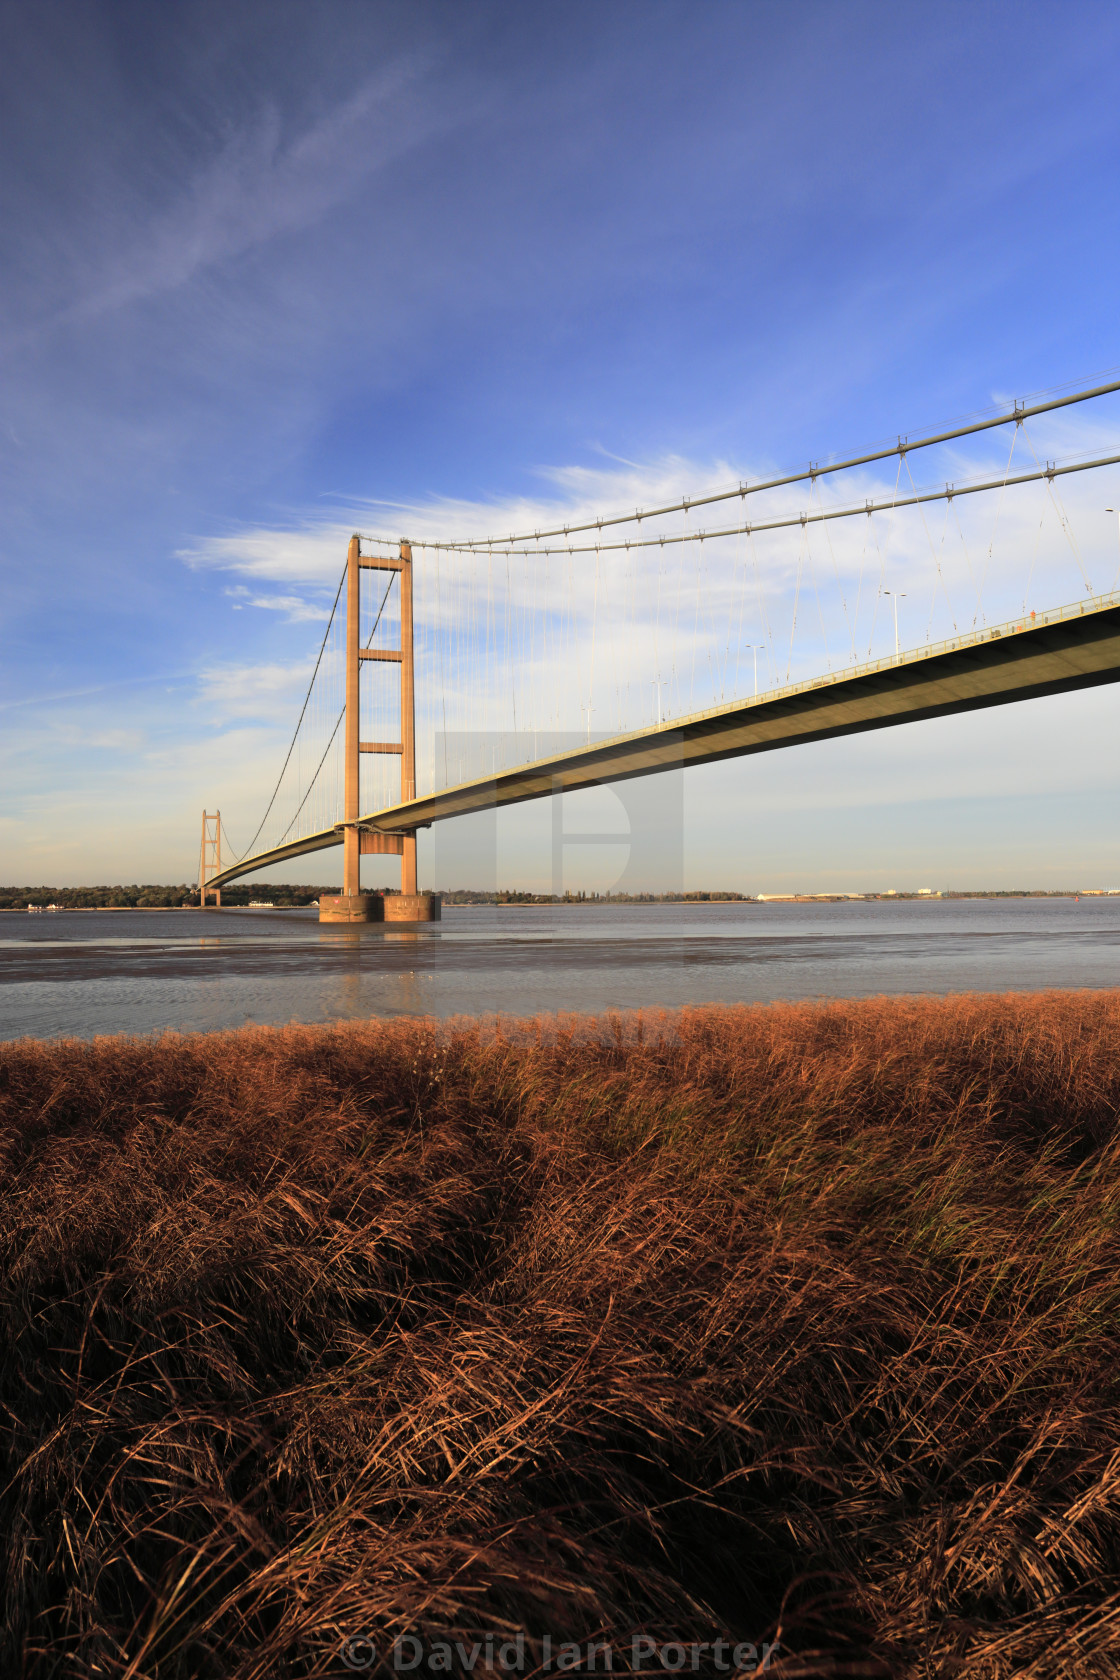 David lee photography barton upon humber Add a Photo Frame Effect To Your Pictures - Canva